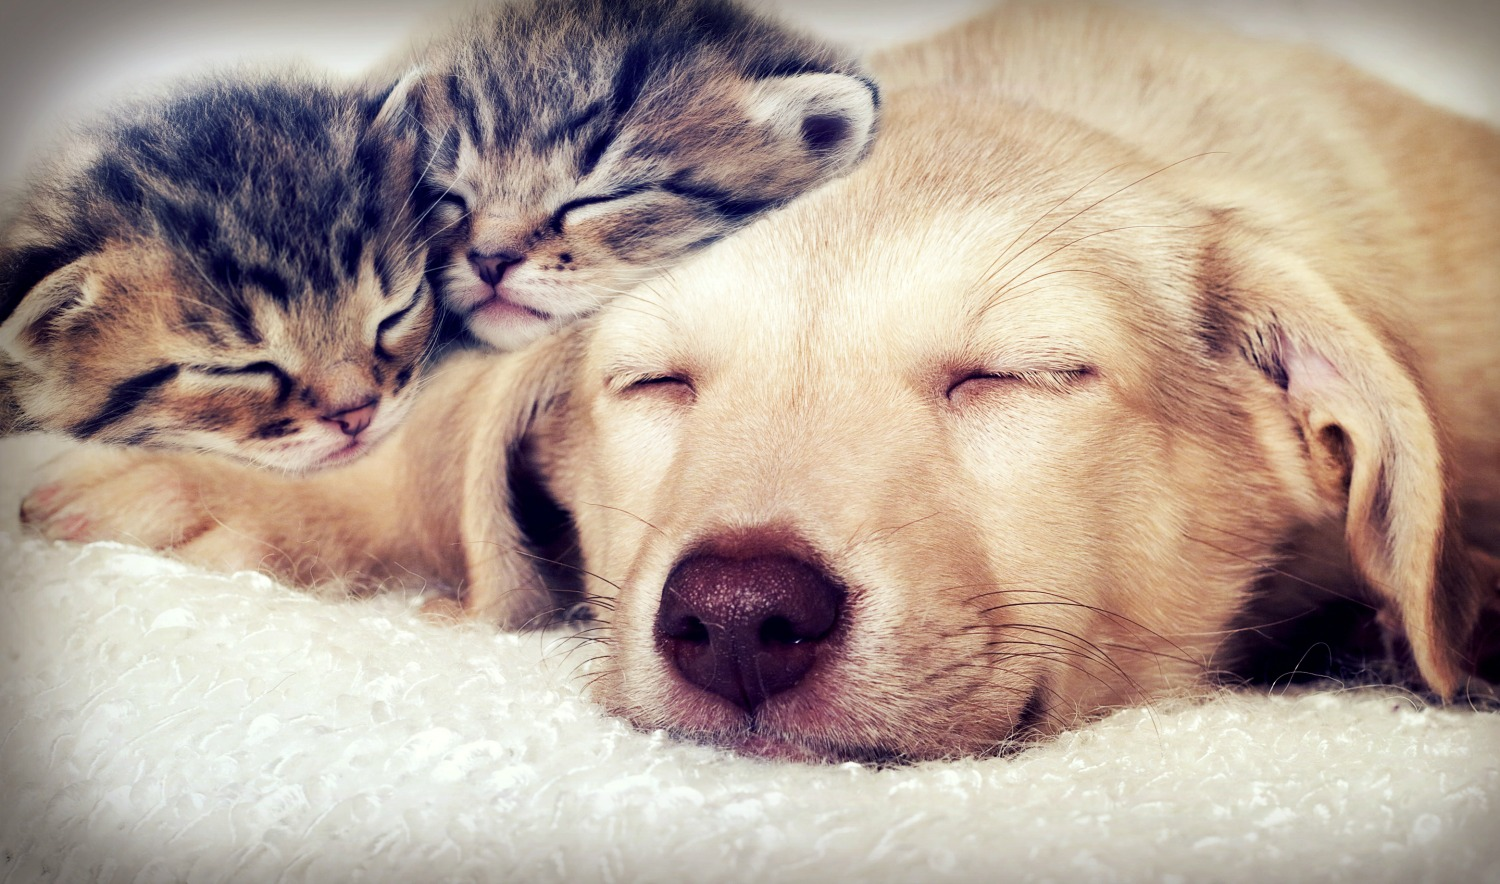 Puppy And Kitten Sleeping 100 Night Challenge- A...